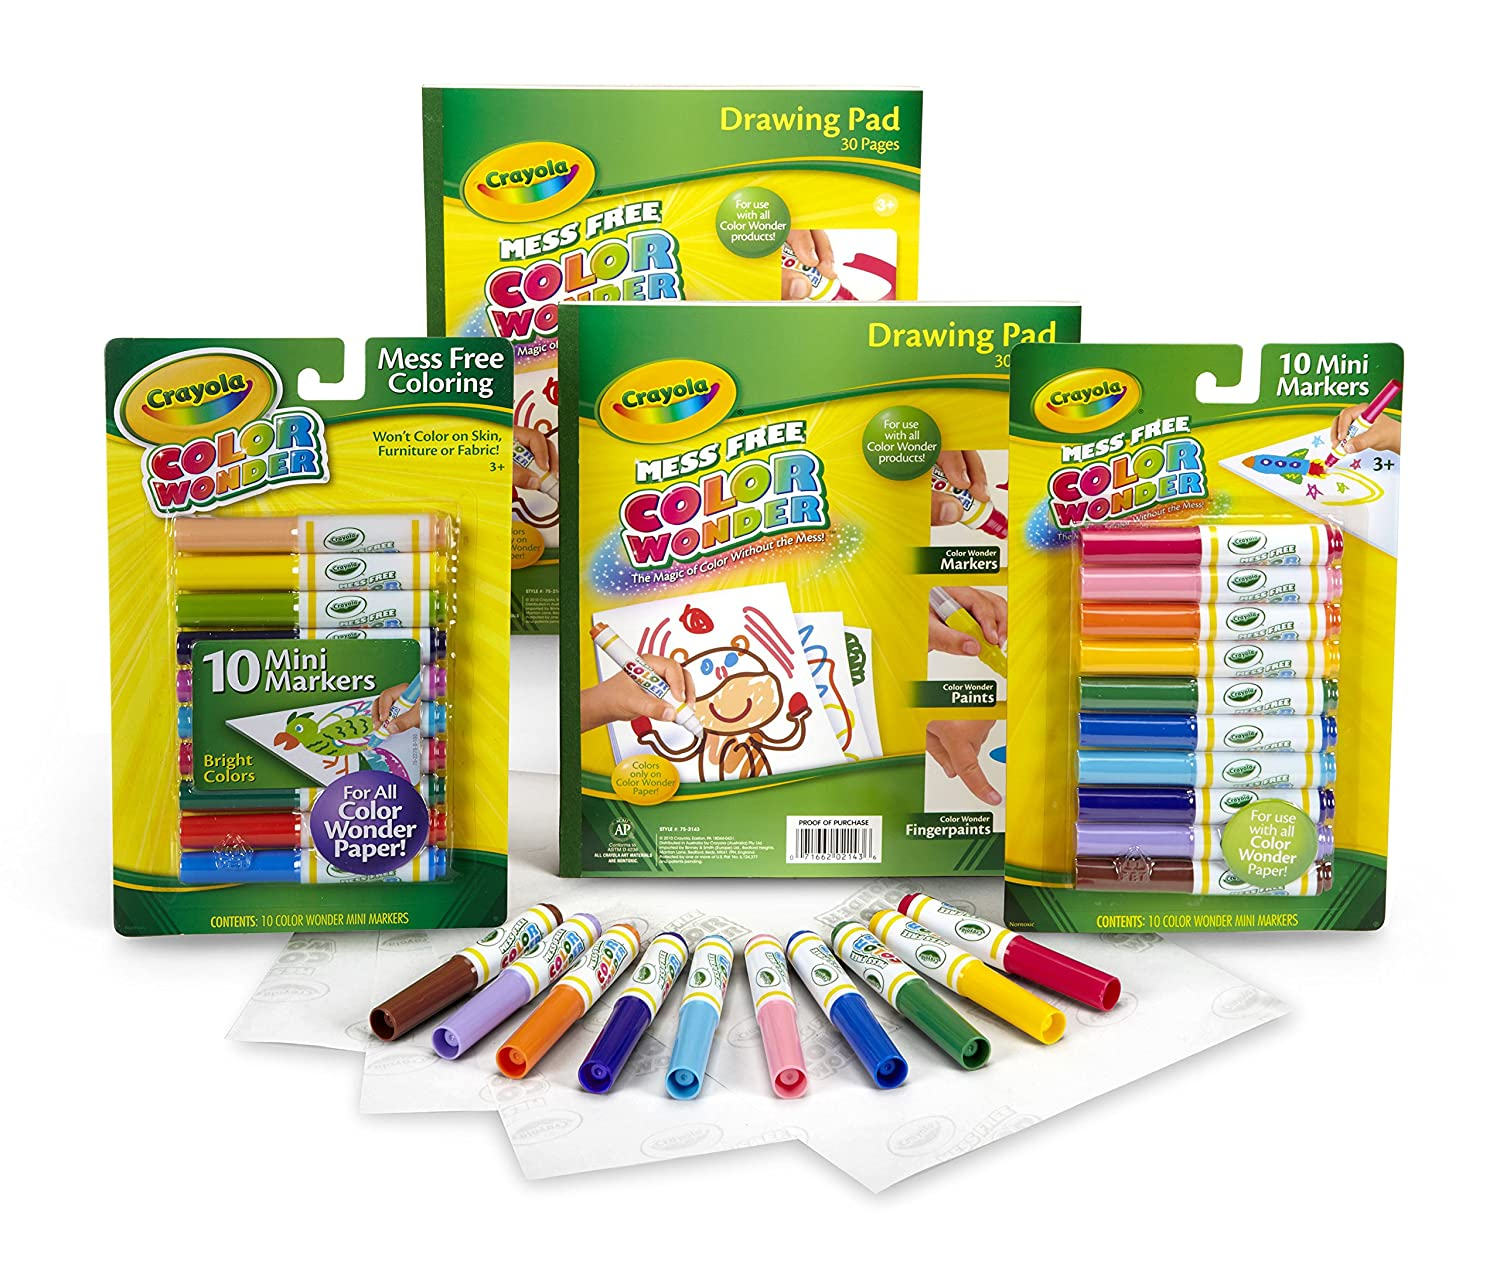 Amazon.com: Crayola Color Wonder Mess Free Coloring, No Mess Markers ...